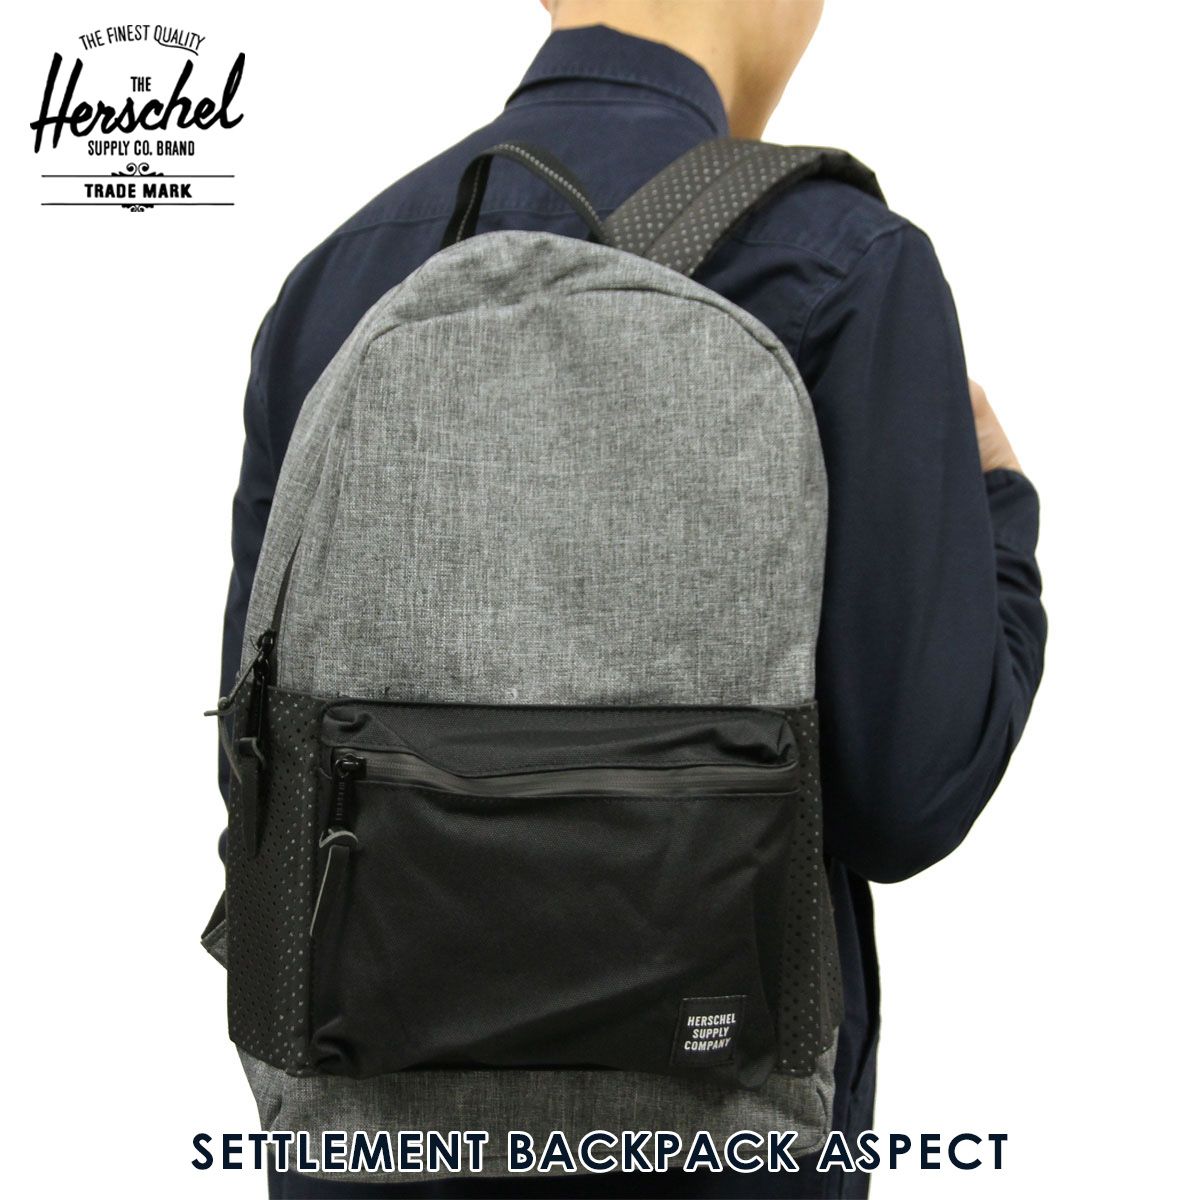 21944b5e1d2 Hershel Herschel Supply regular store backpack SETTLEMENT BACKPACK ASPECT  10005-01554-OS RAVEN CROSSHATCH BLACK 23L